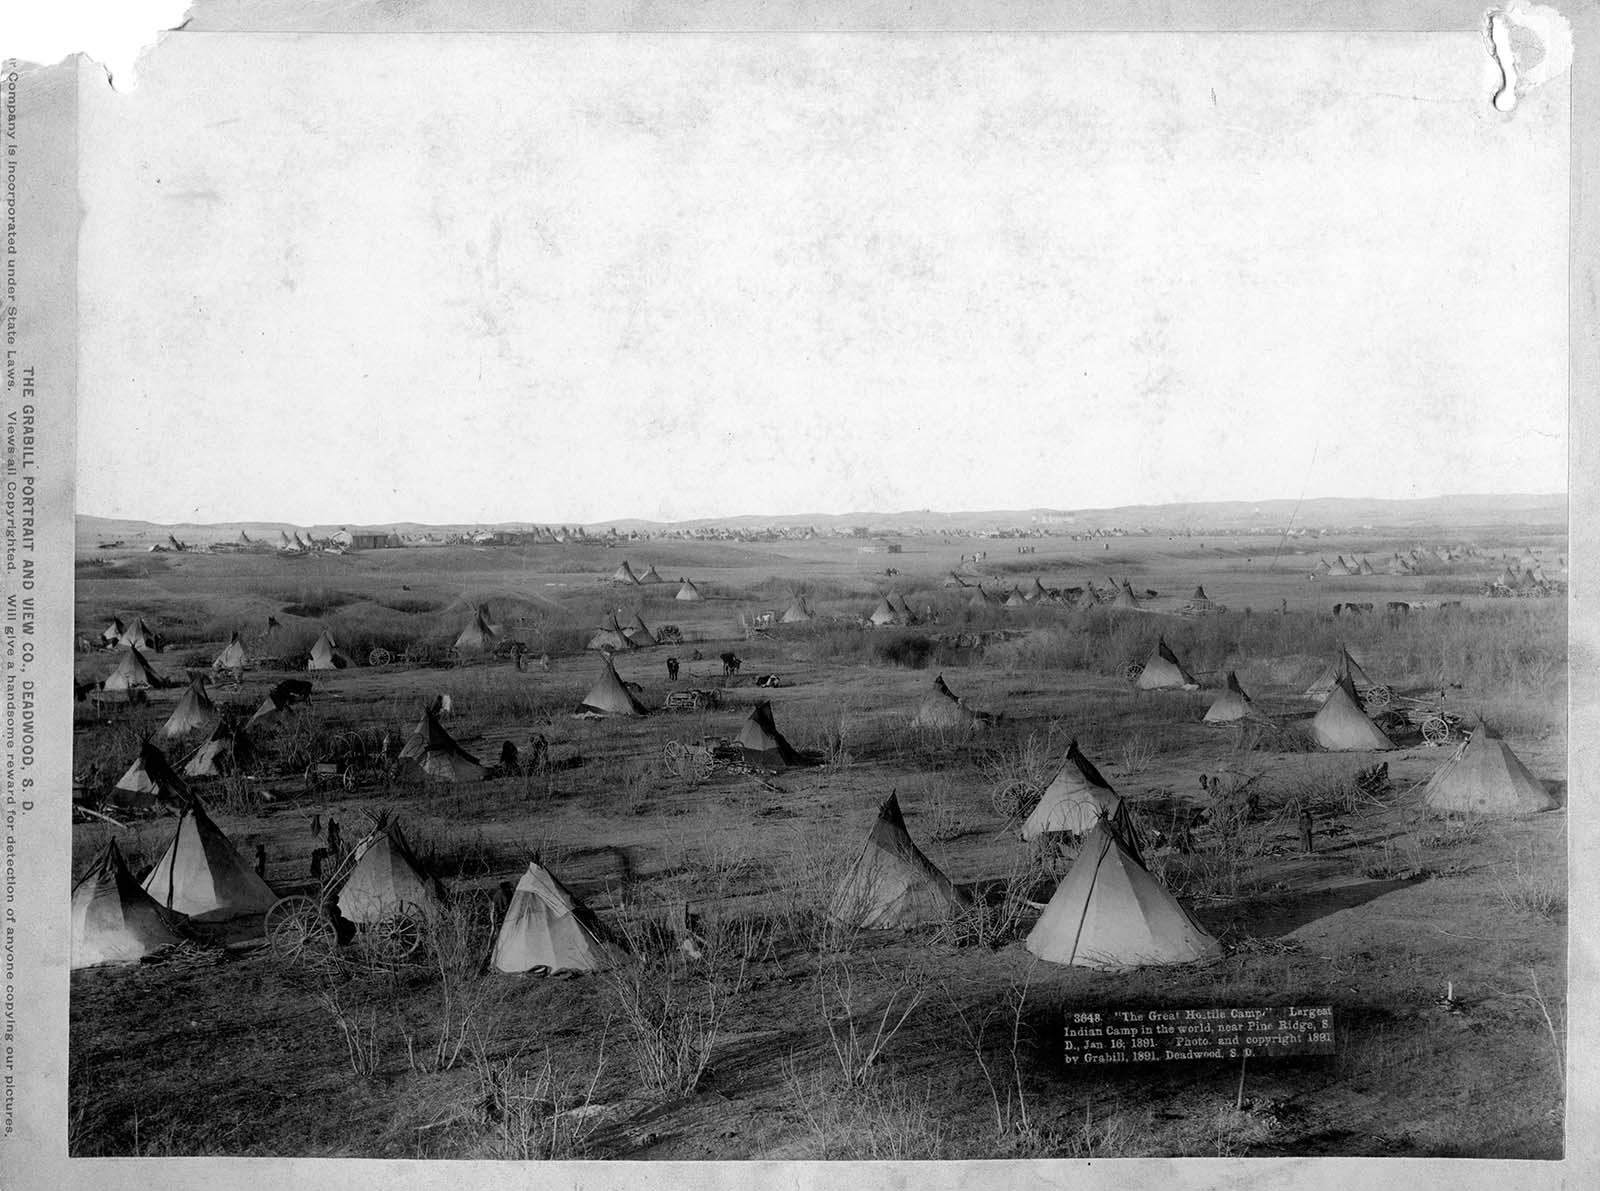 Camp near Pine Ridge, 1891. MS 35 North American Indian Photograph CollectionP.35.00